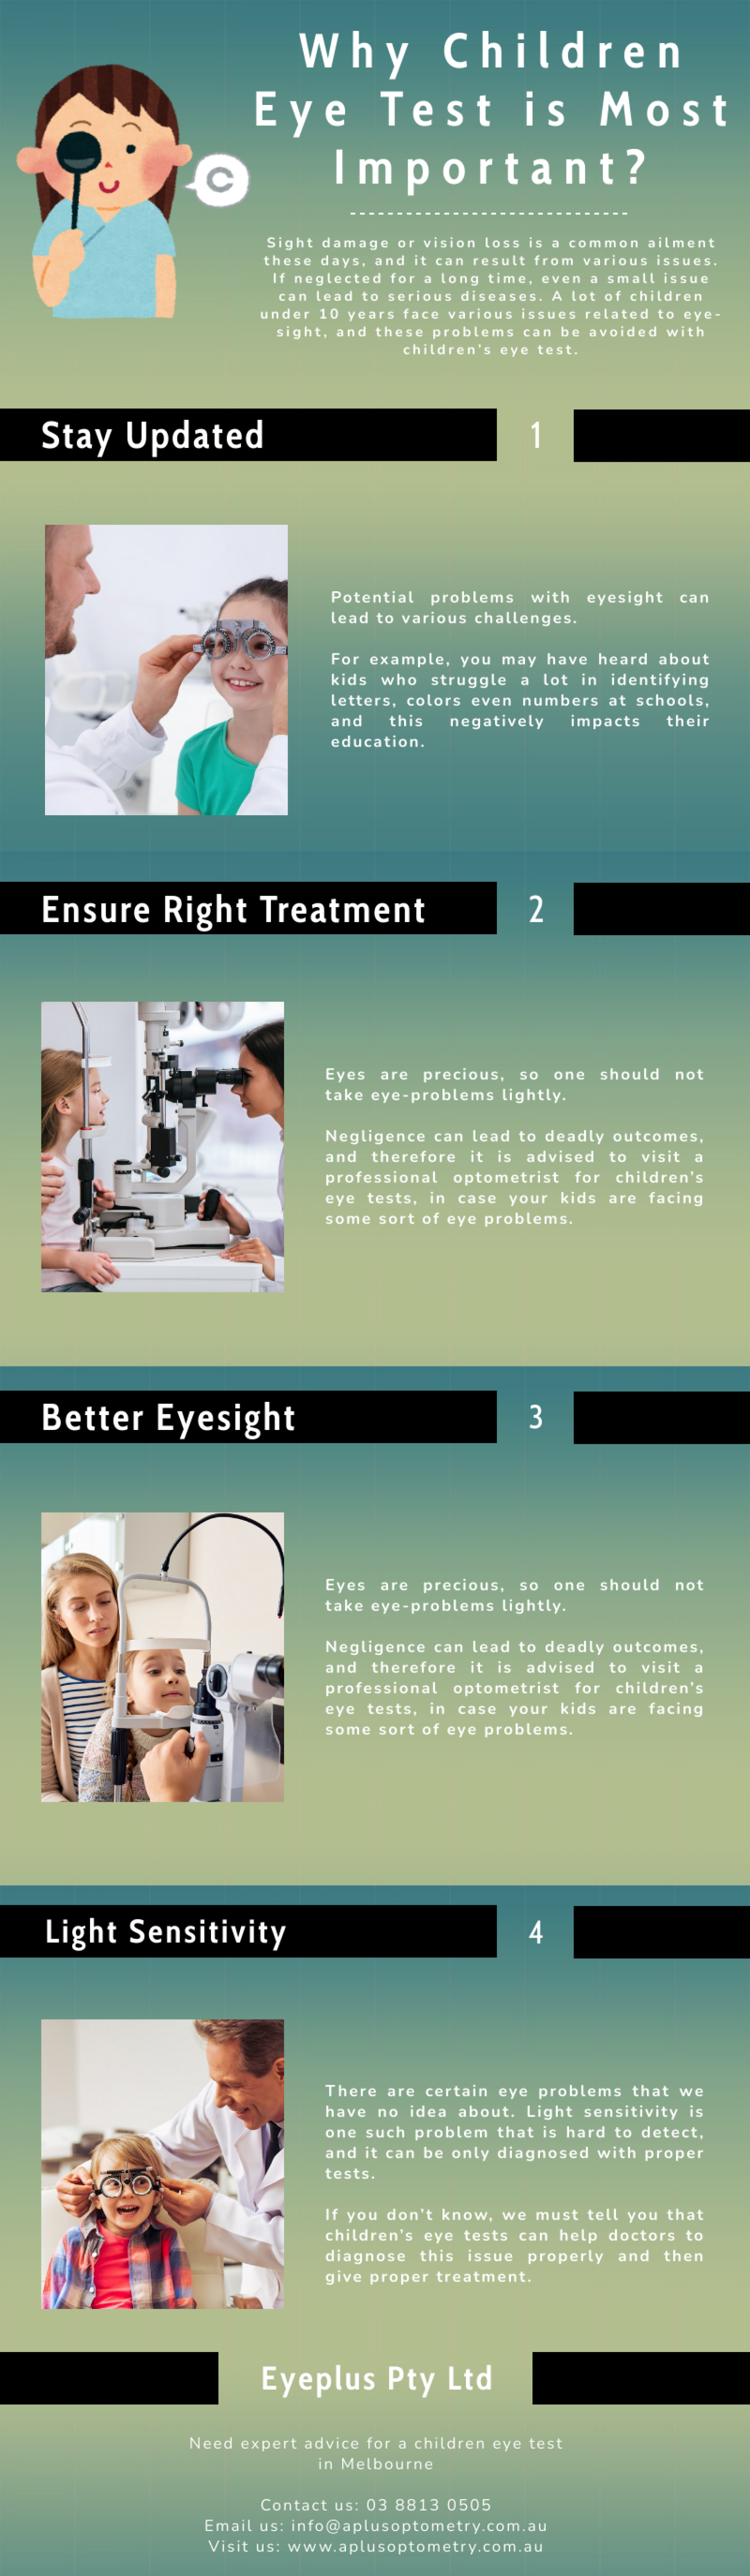 Why Children Eye Test is Most Important? Infographic